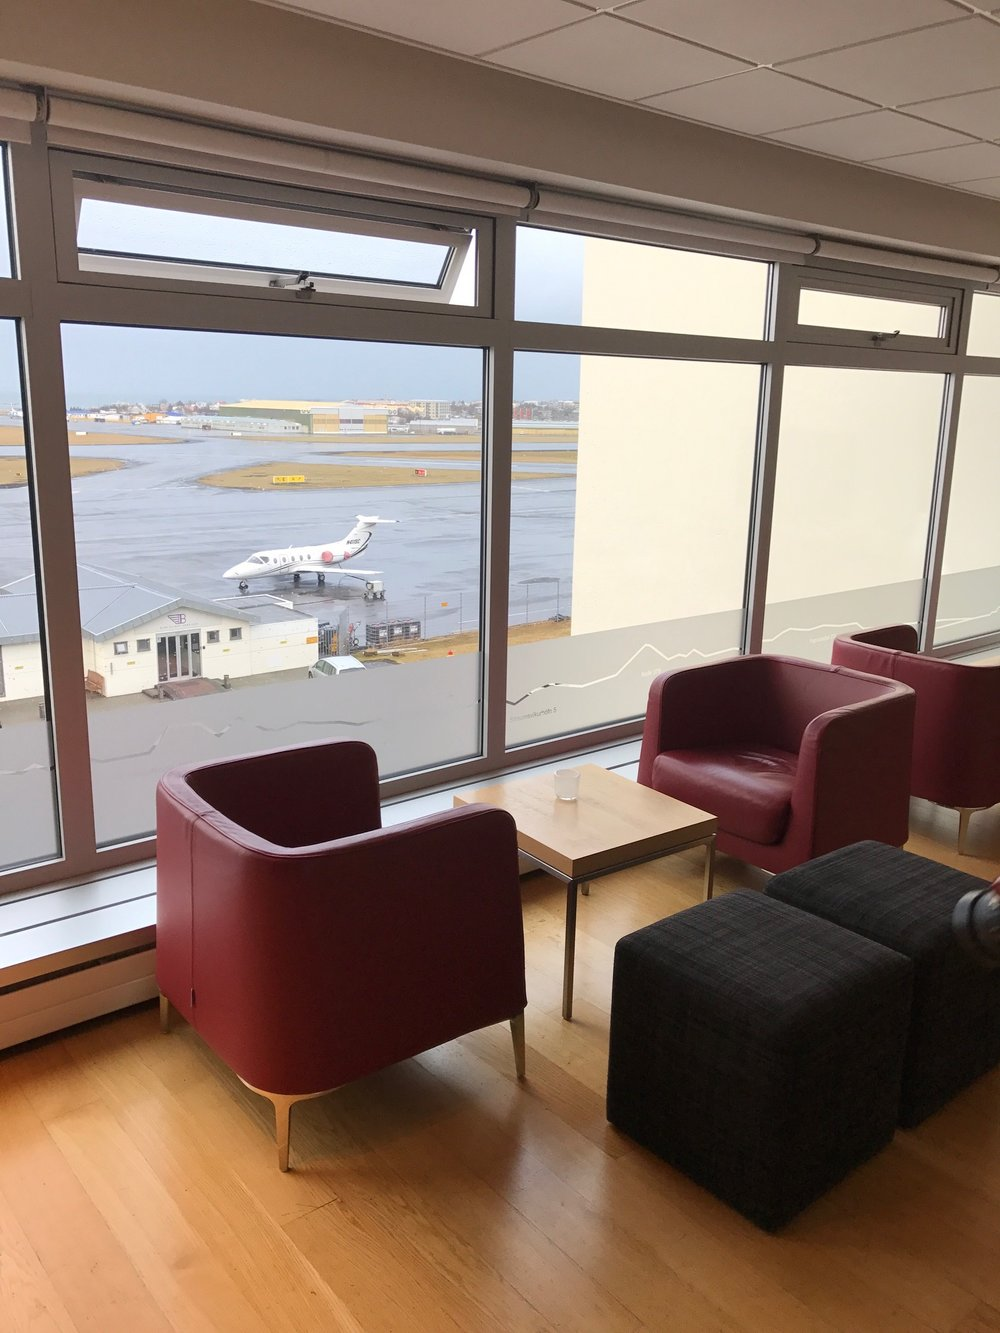 Pictured: 4th floor Lounge with a view of Icelandic Air private jet airport where celebrities such as Kim Kardashian and Justin Bieber have landed.